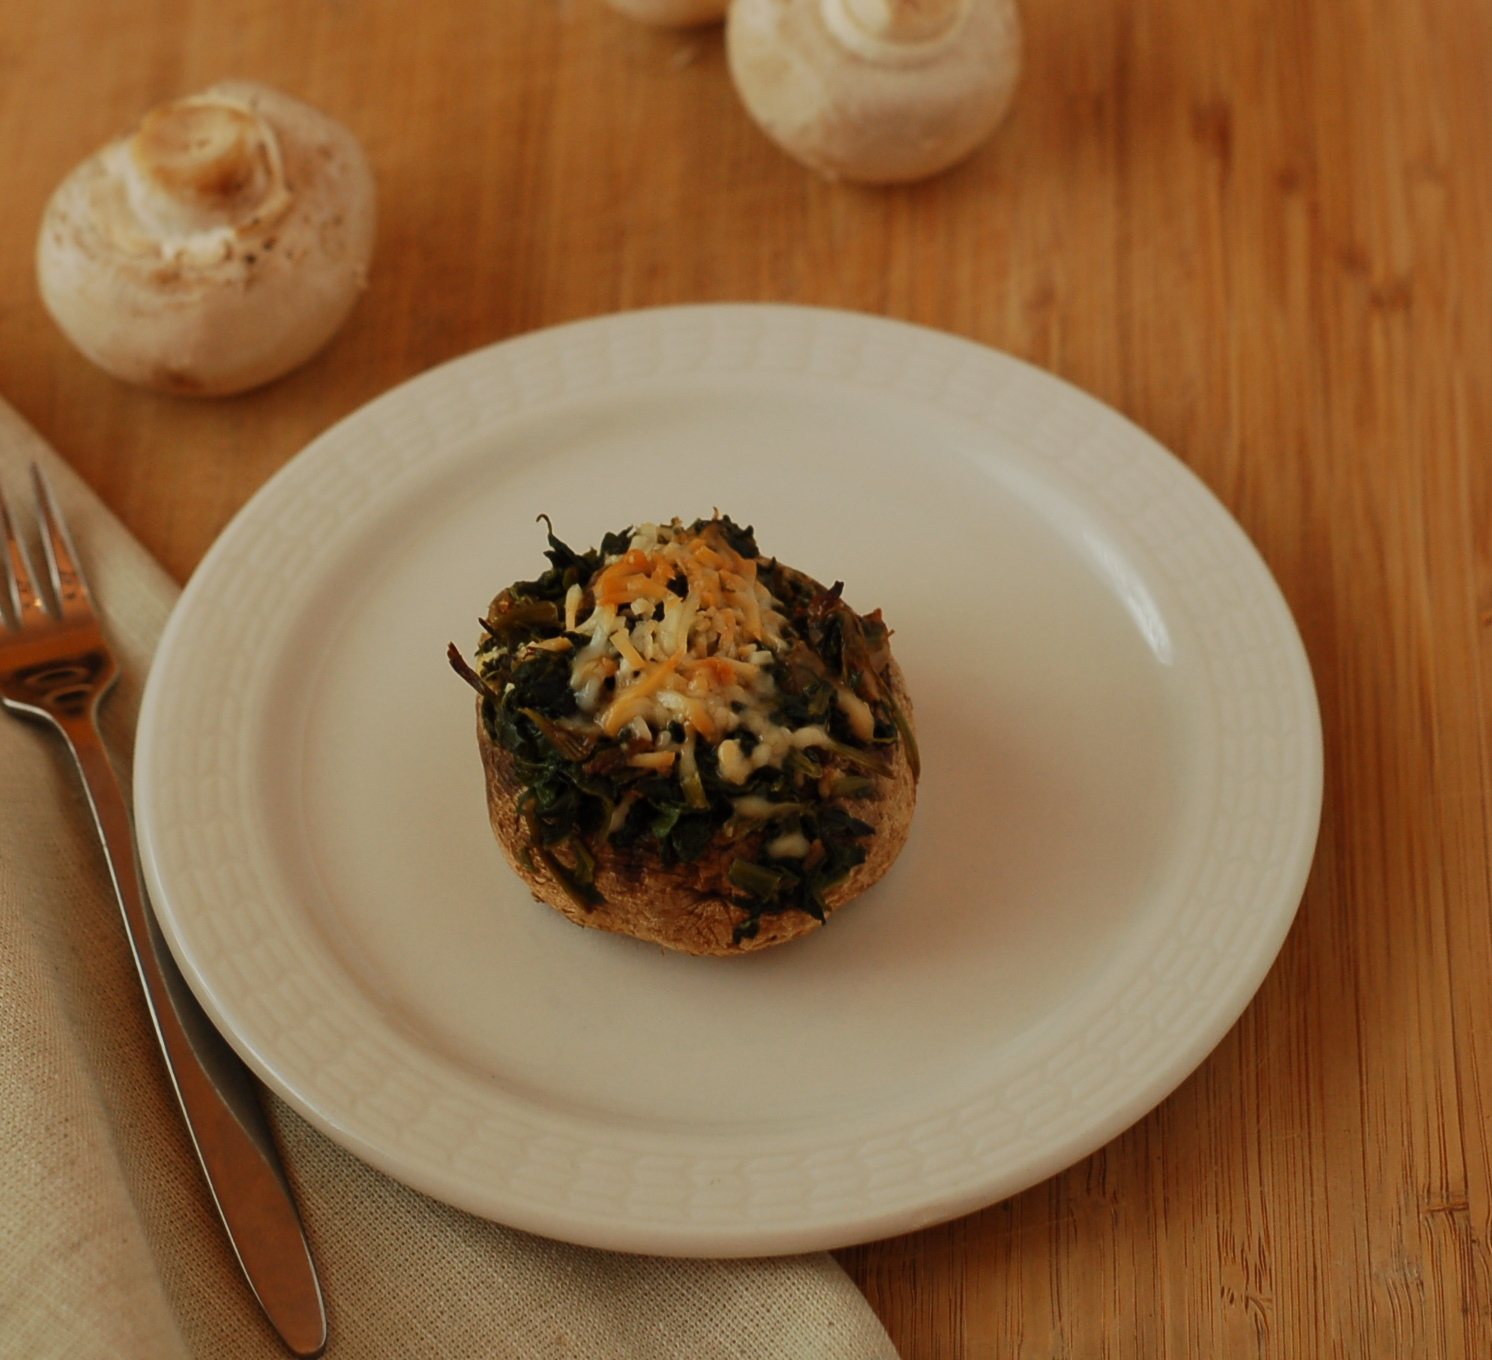 Mushrooms - stuffed with spinach